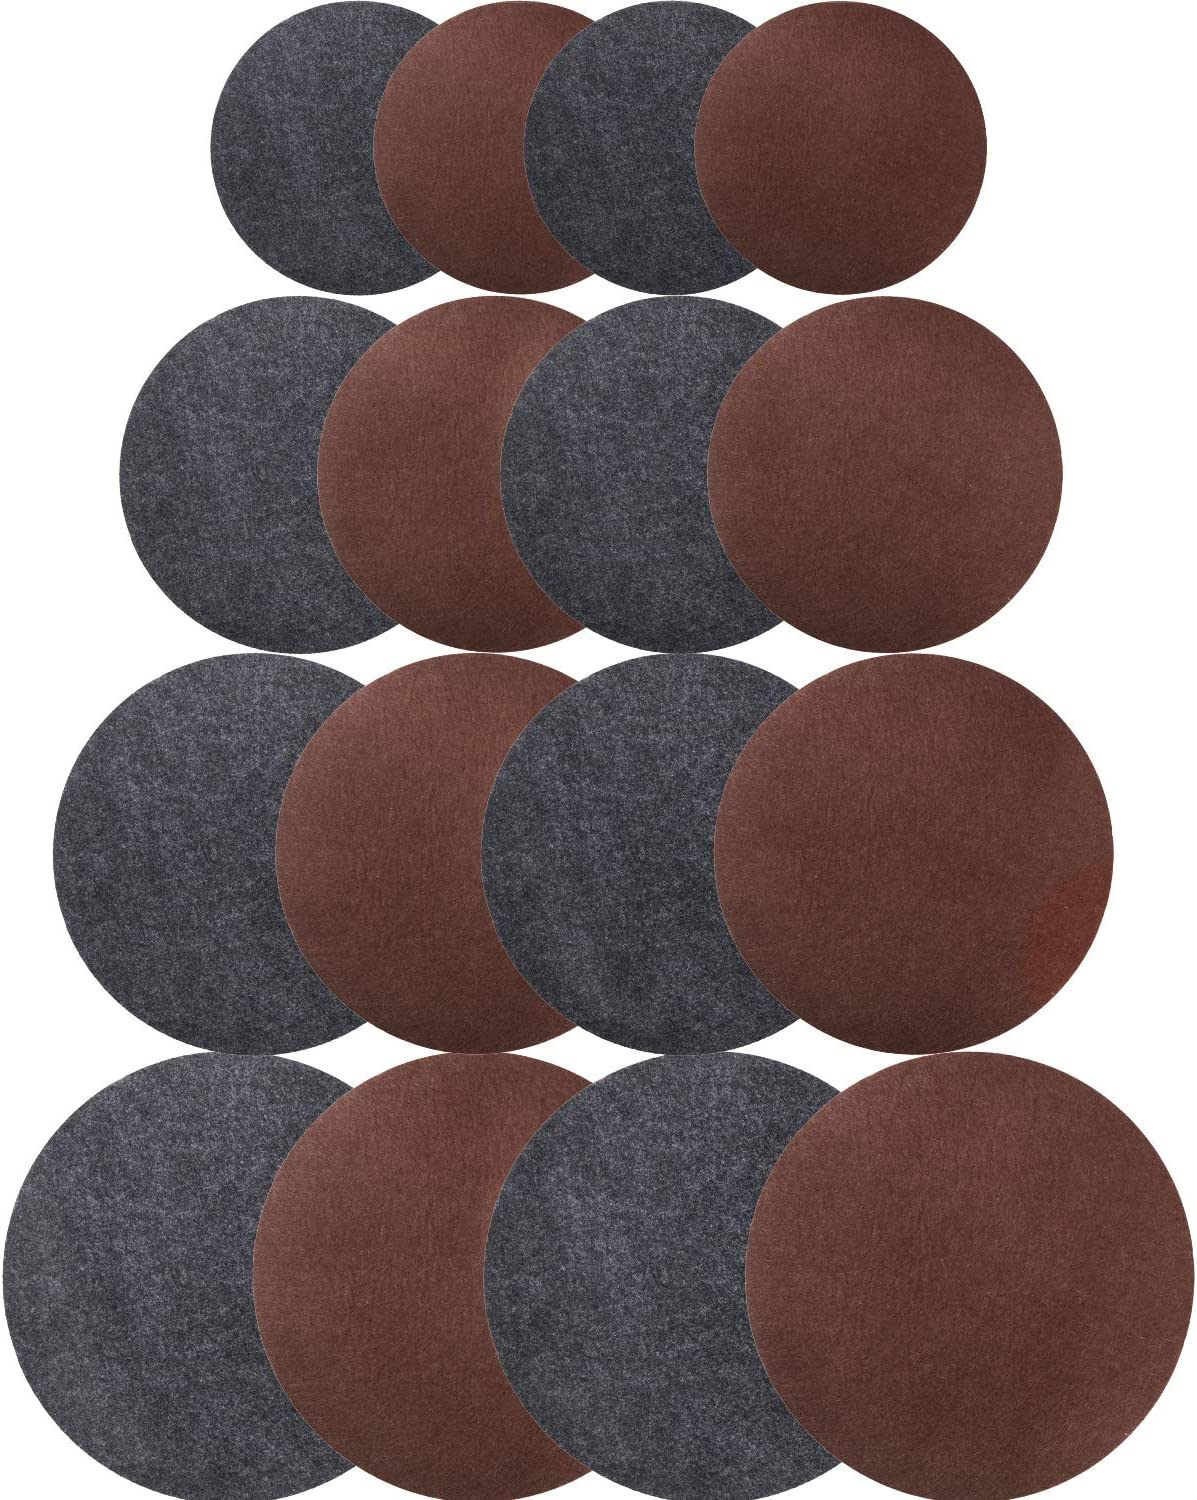 Irenare 16 Pieces Reversible Round Plant Coaster Mat Absorbent Kitchen Hot Pads for Pots, Pans, DIY Craft Supplies, Gray and Brown, 4 Inch, 6 Inch, 8 Inch, 10 Inch